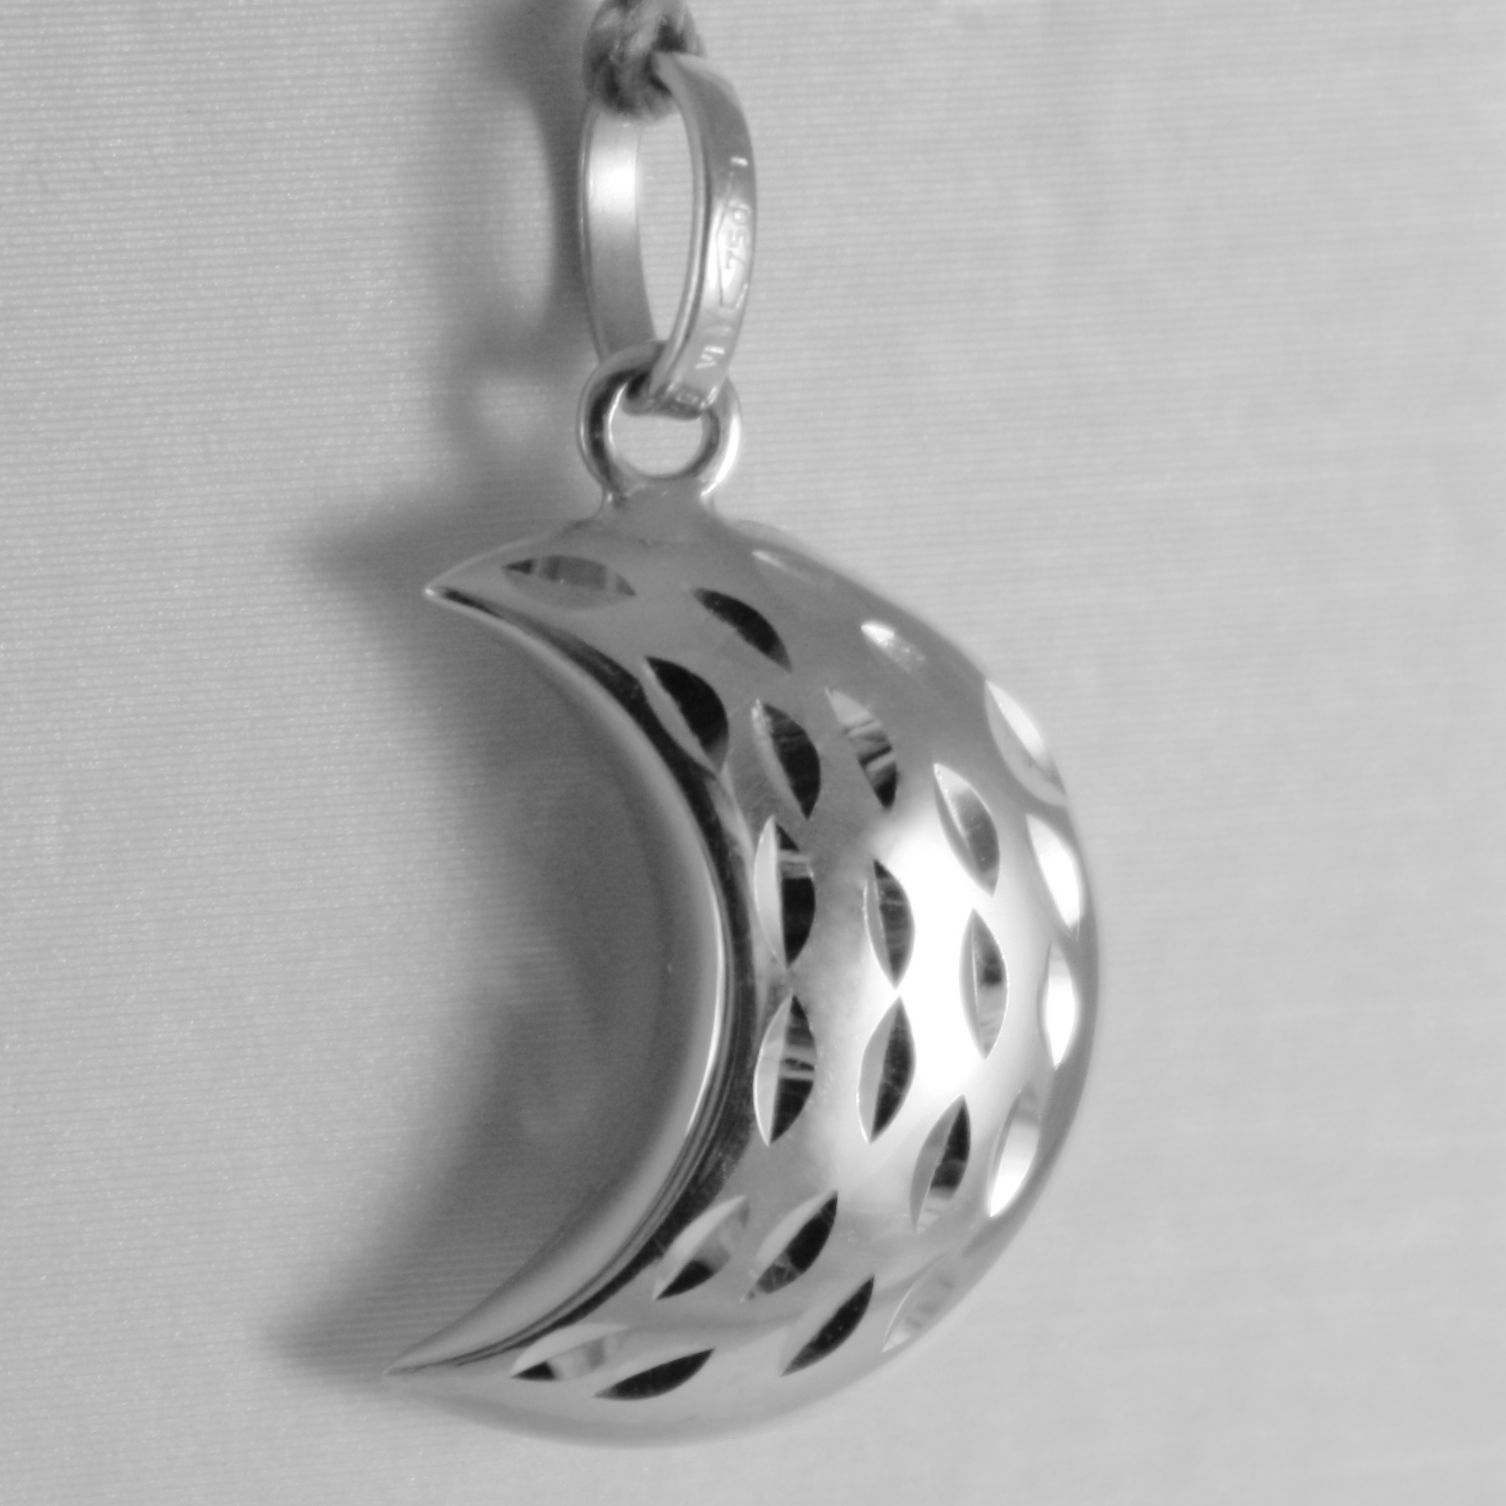 18K WHITE GOLD ROUNDED MINI HALF MOON PENDANT FINELY HAMMERED MADE IN ITALY